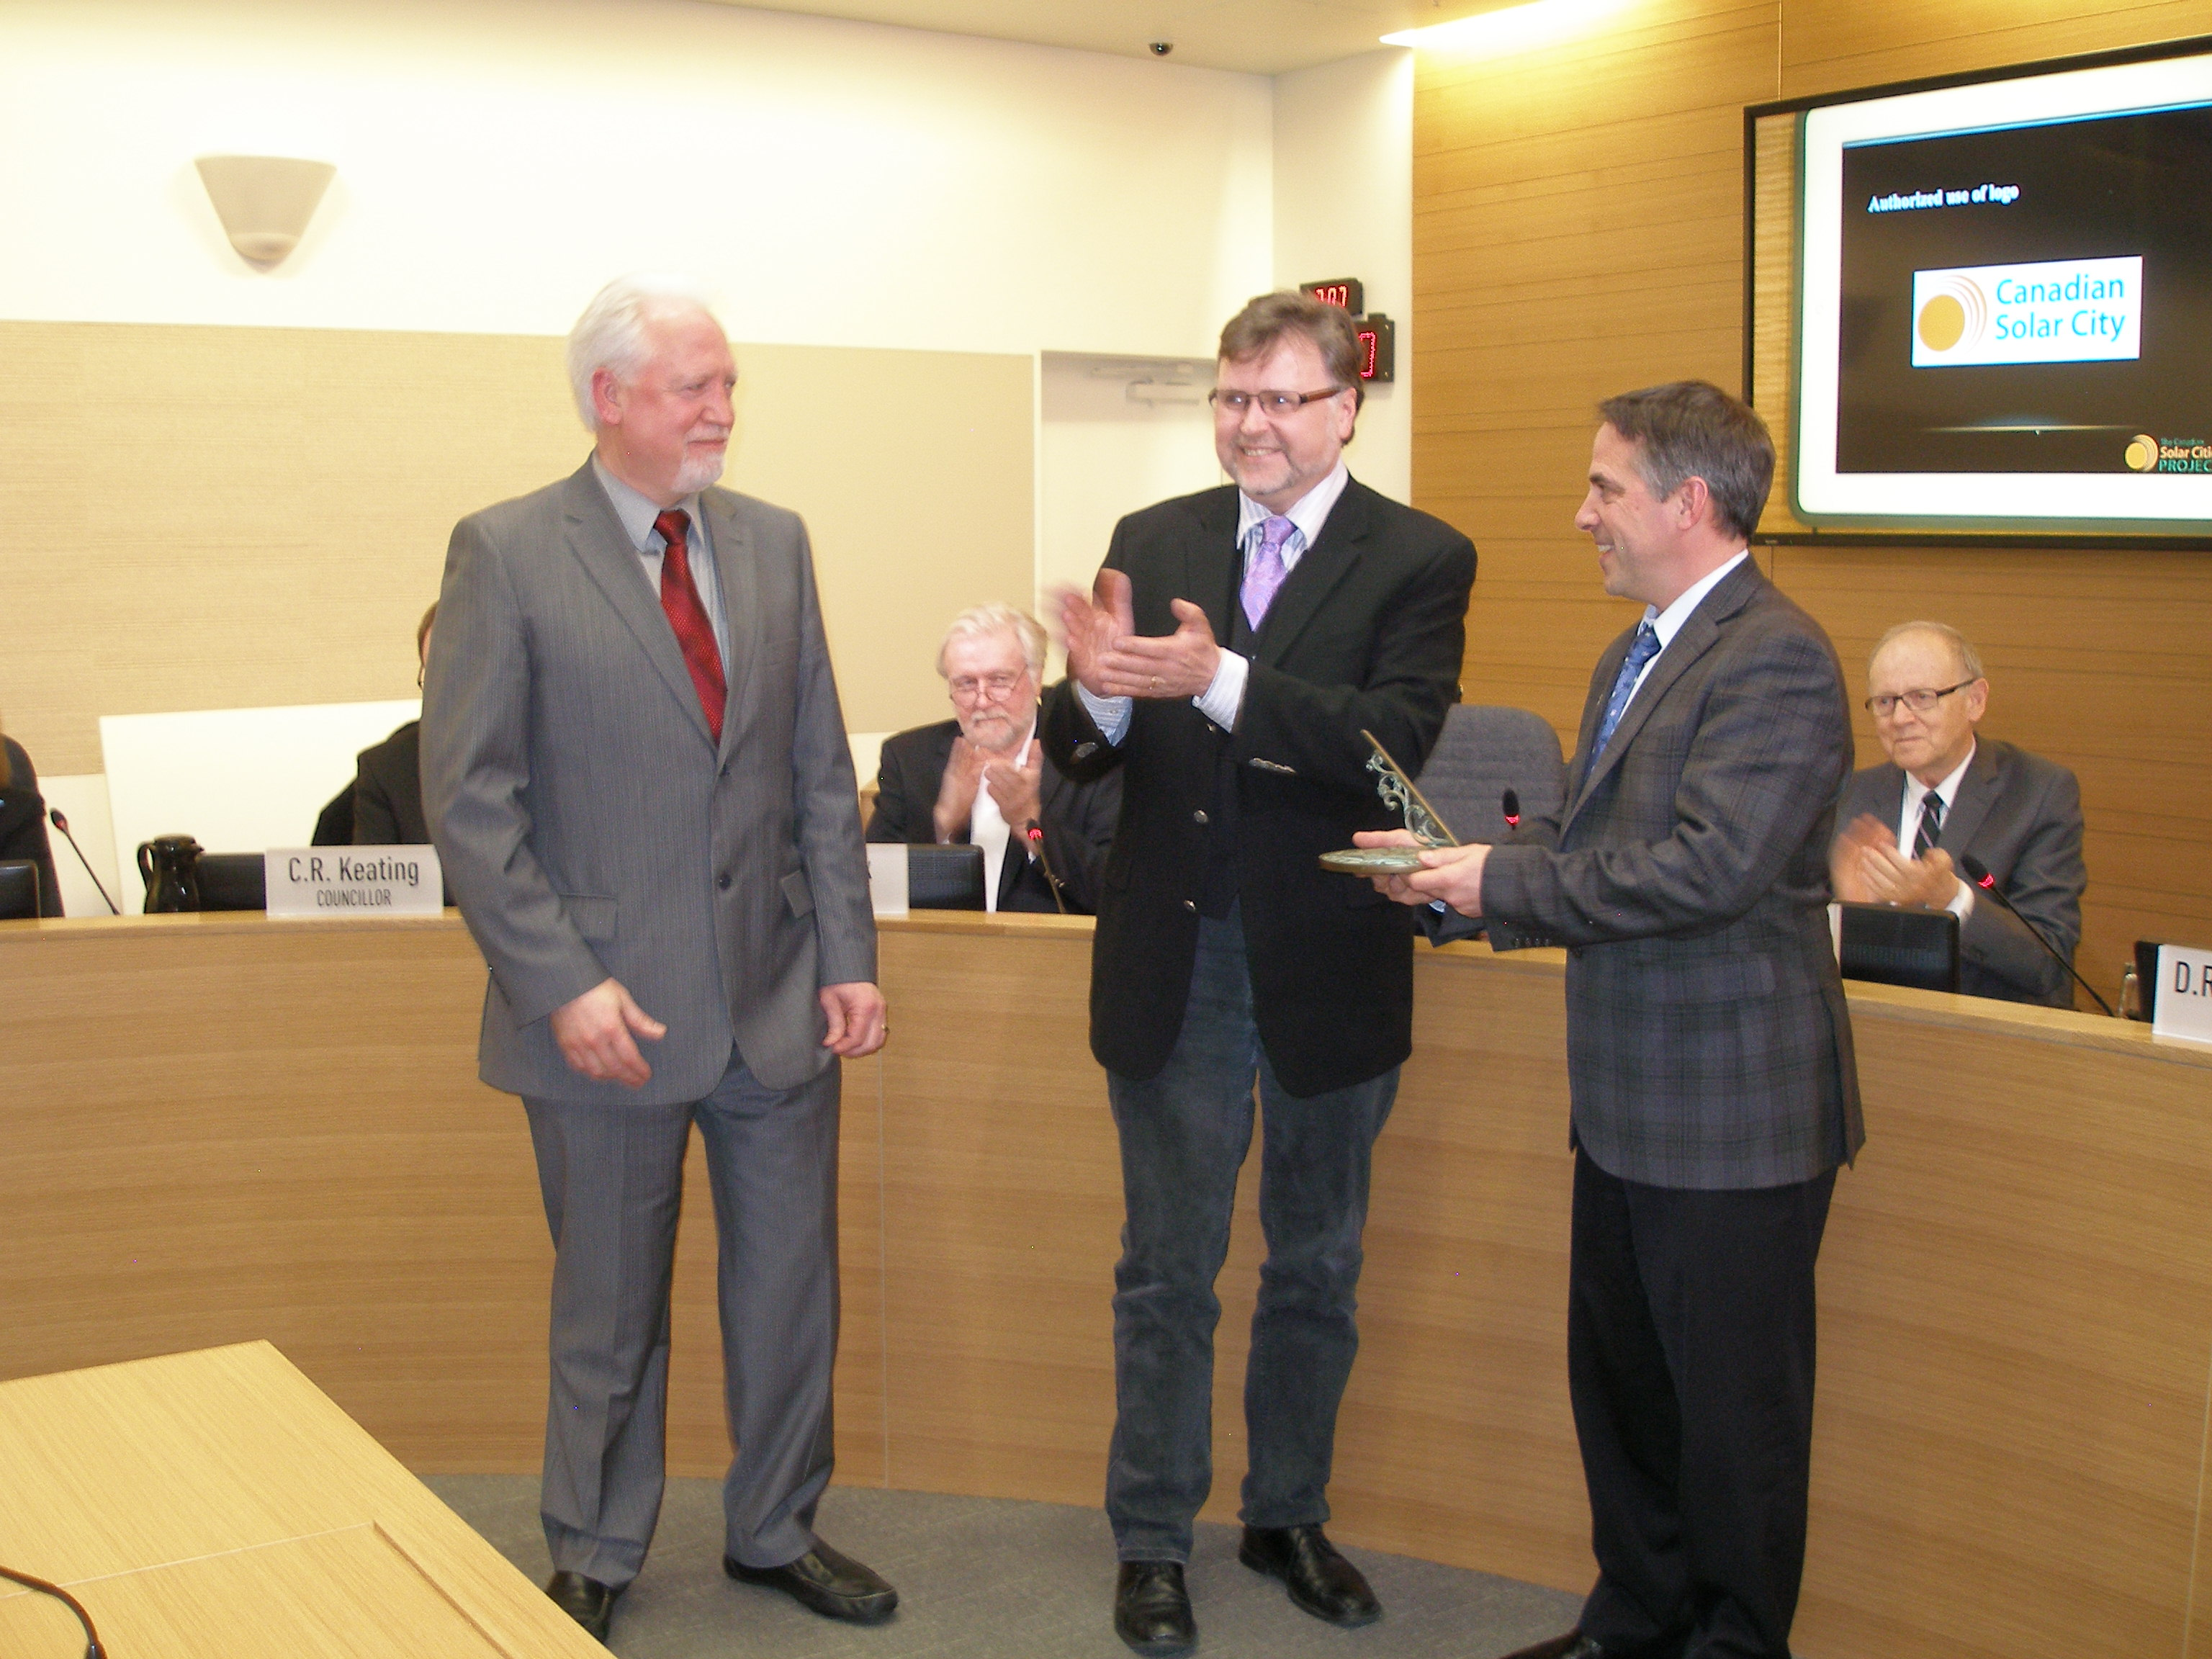 L-R, Executive Director Bob Haugen and Board Chairperson Walter Andreeff present Mayor Darrell Mussatto with a sundial in recognition of The City of North Vancouver's Canadian Solar City award.